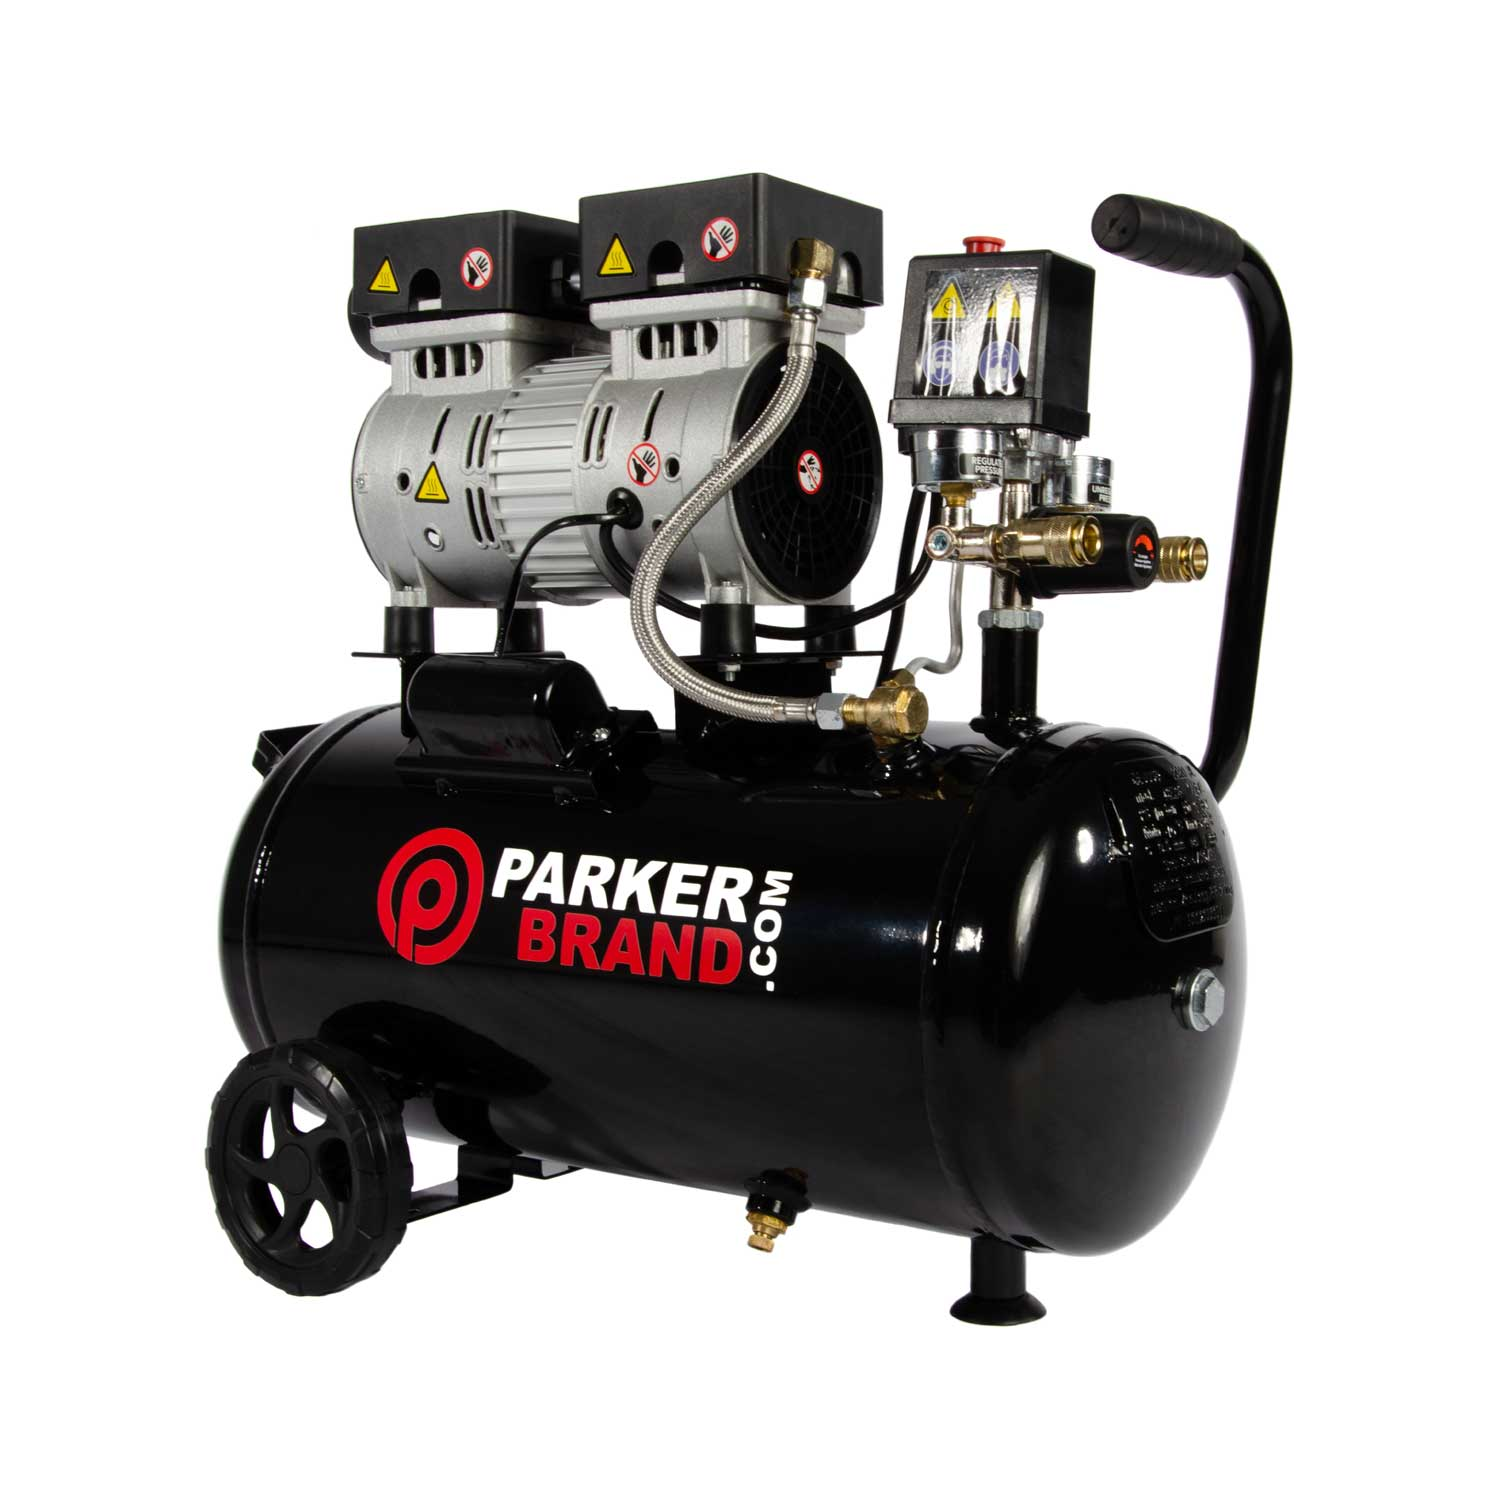 Silently Does It: ParkerBrand Oil-less Air compressors